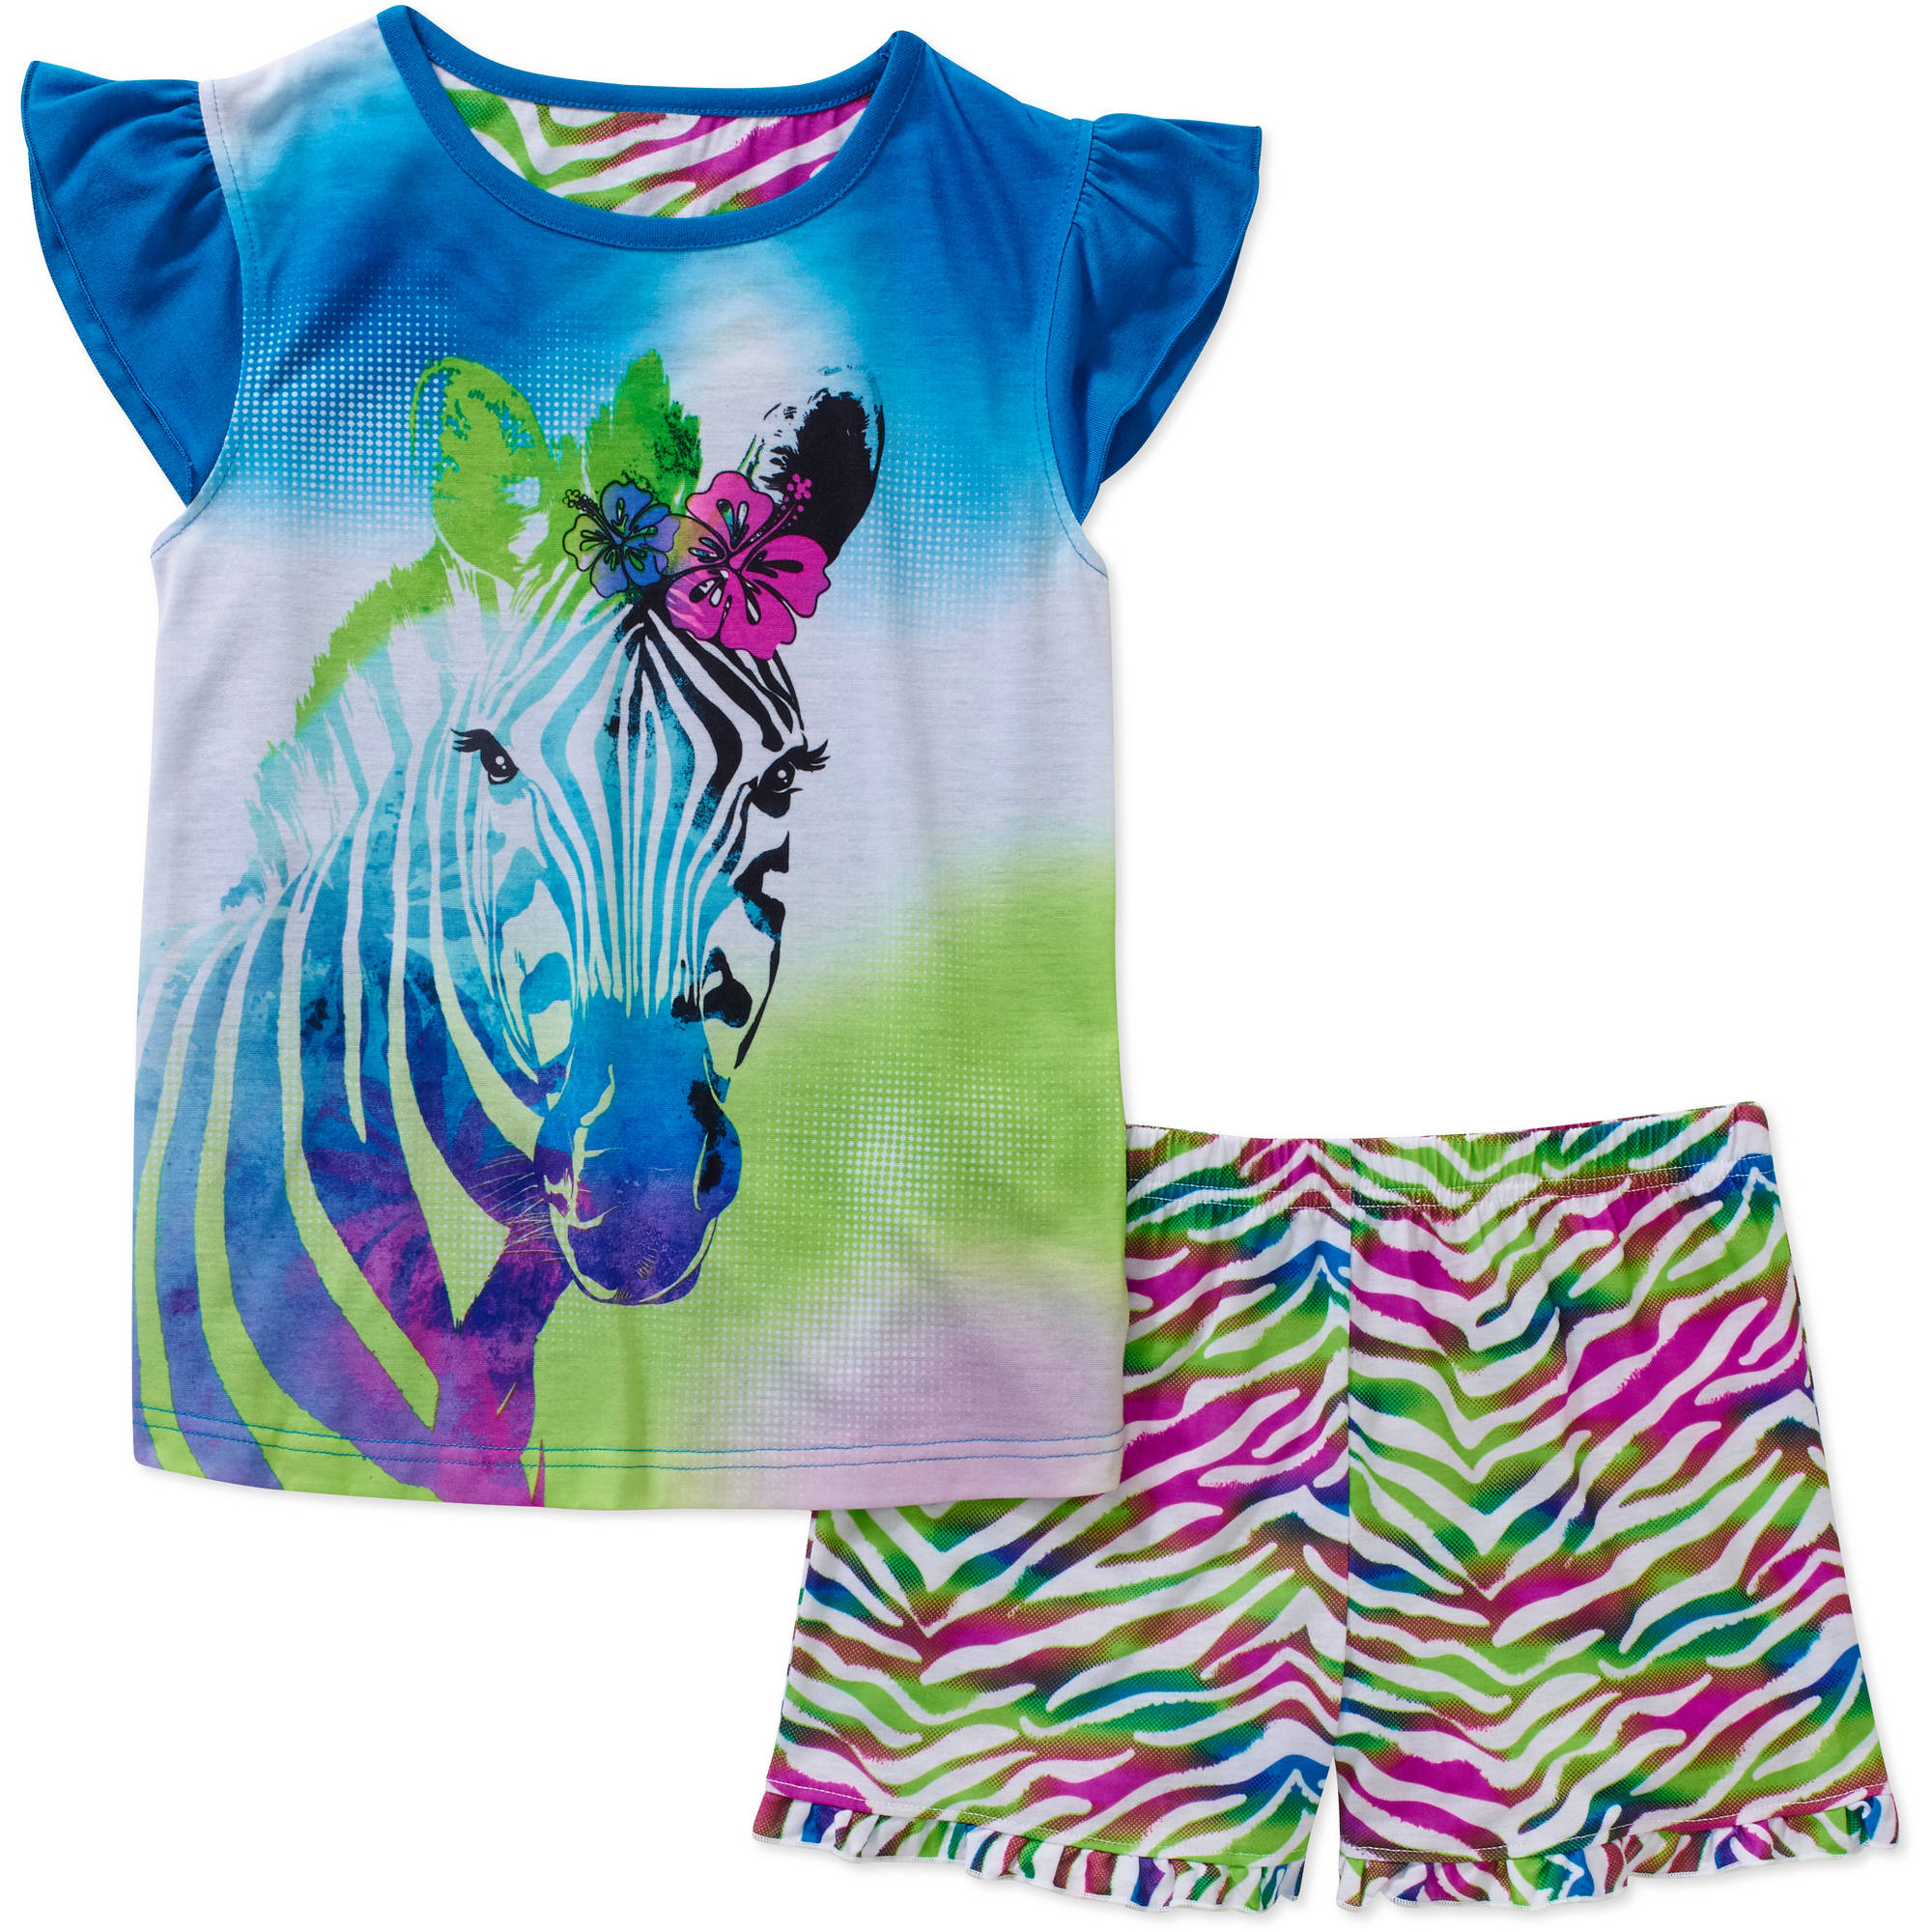 Girls' Graphic Short Sleeve Sleep Top and Short 2 Piece Pajama Set